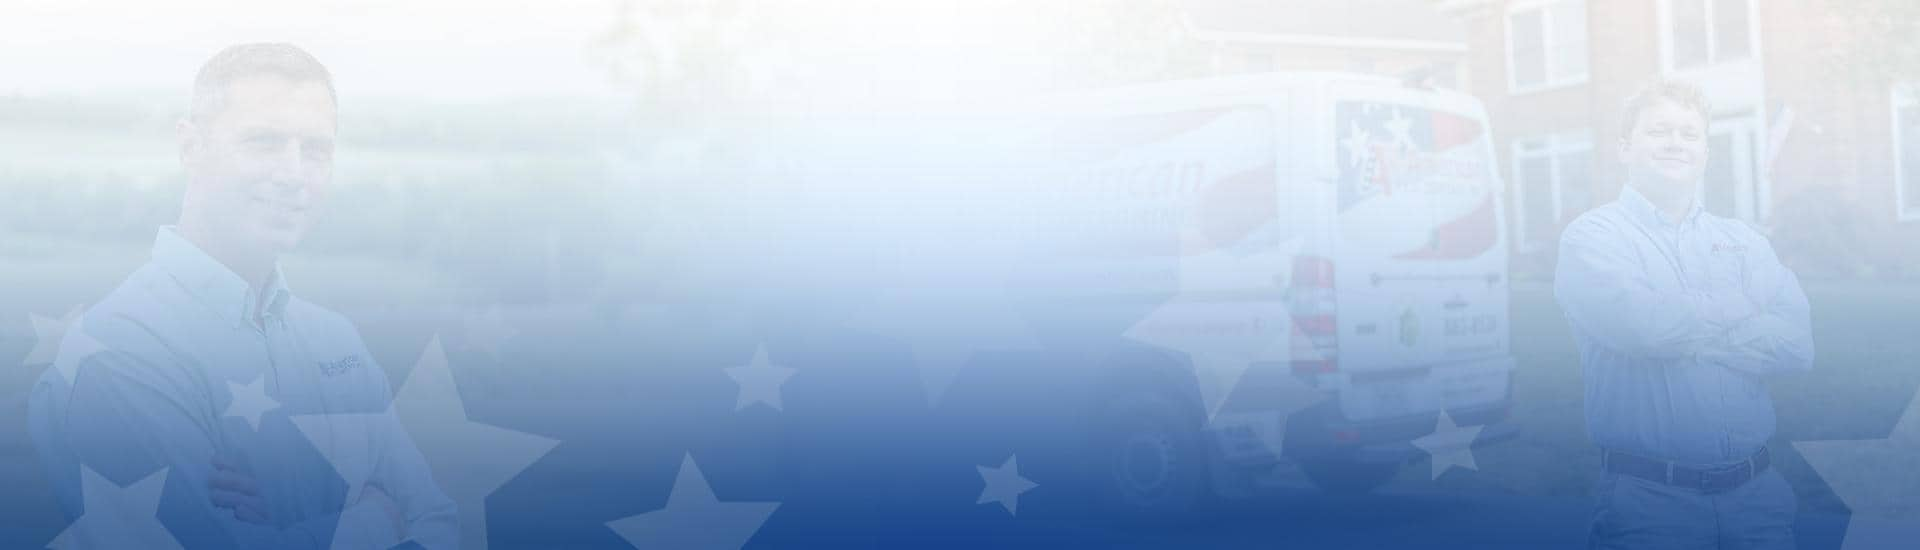 all american about us banner